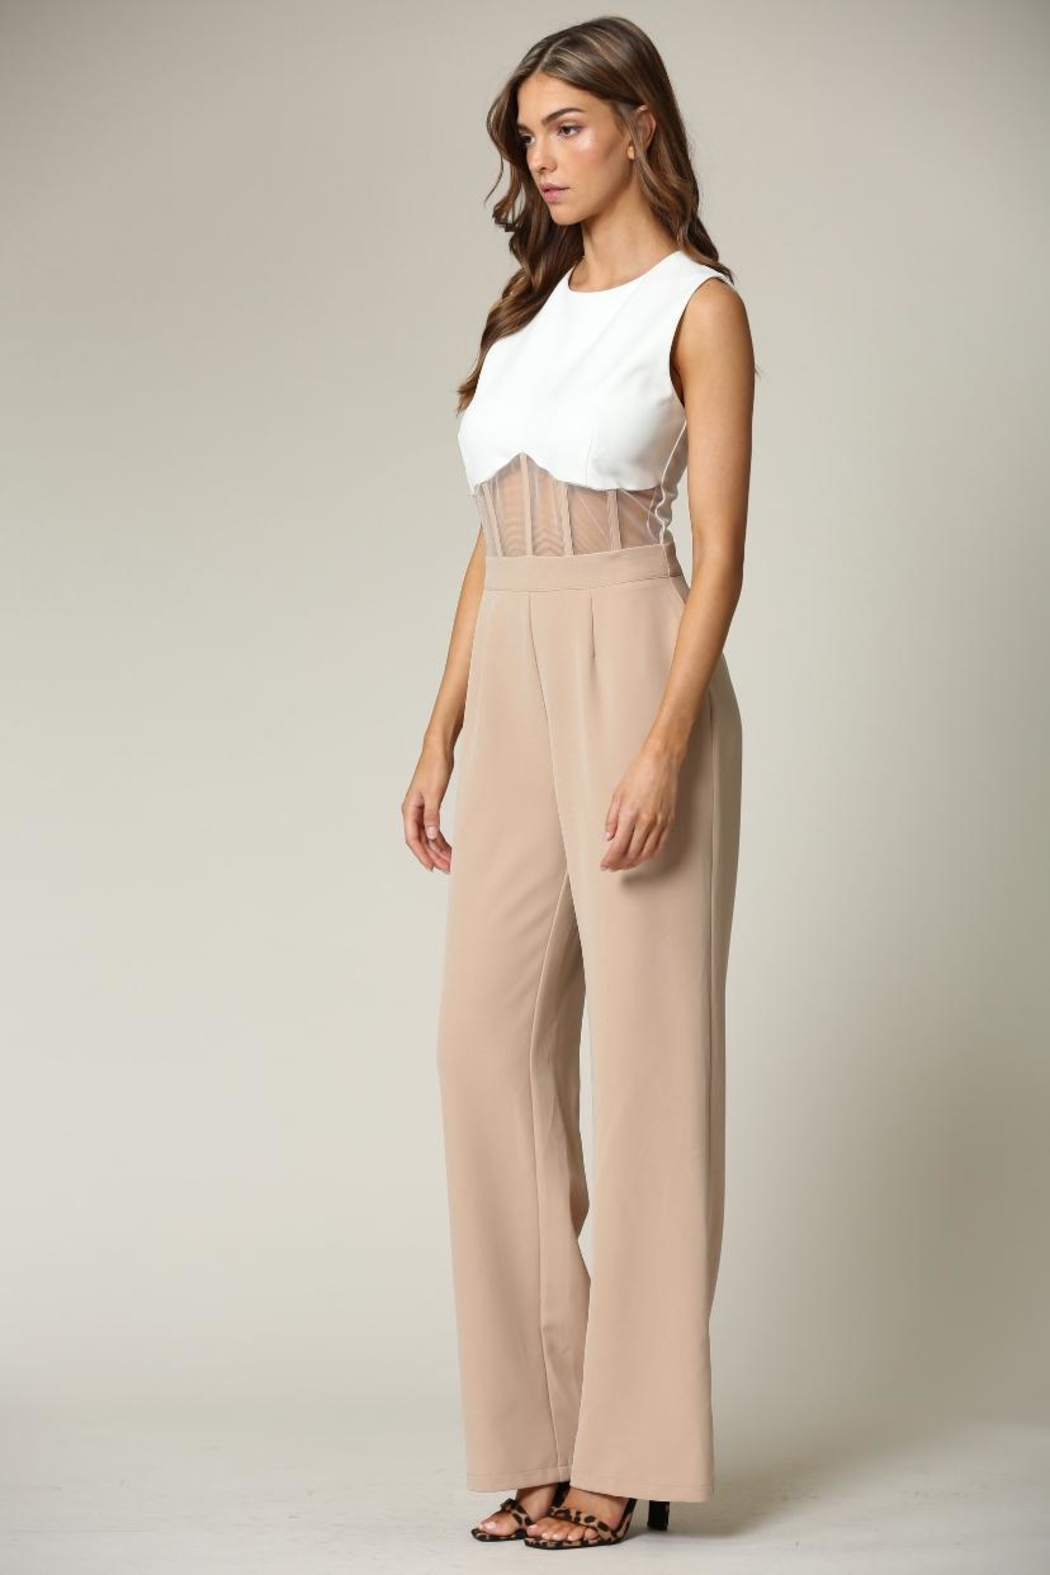 Blithe  White-Beige Jumpsuit - Front Full Image